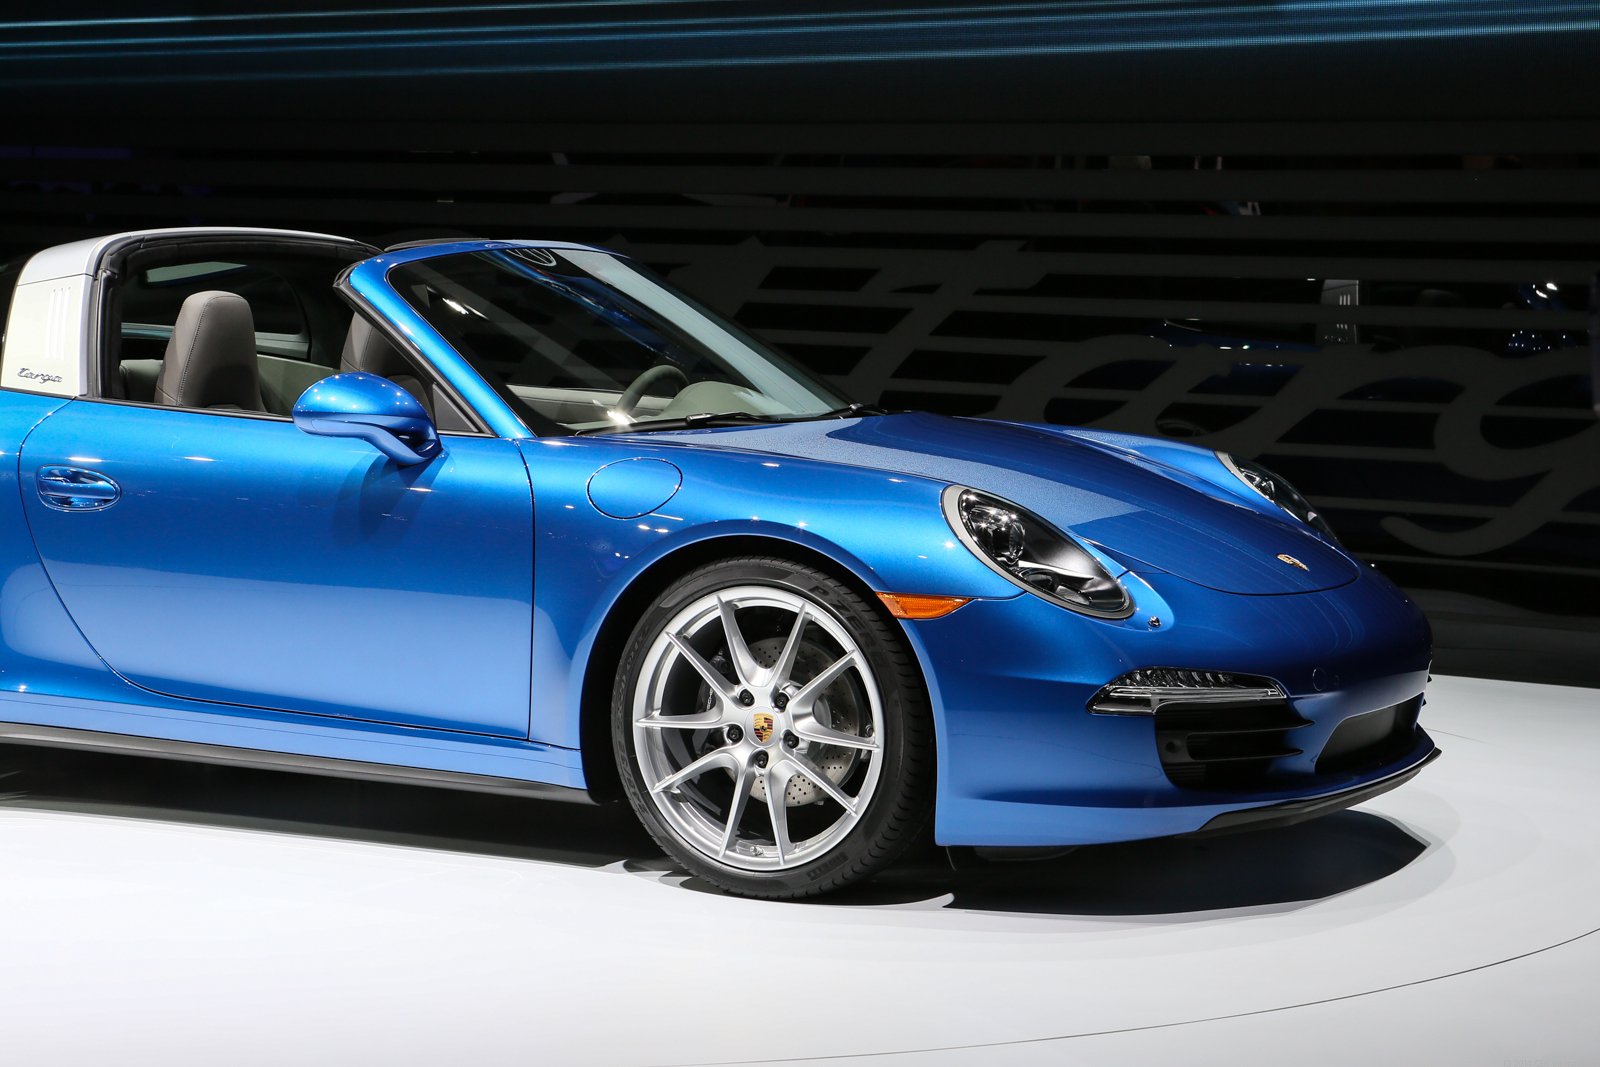 To Targa, or to Cabriolet?